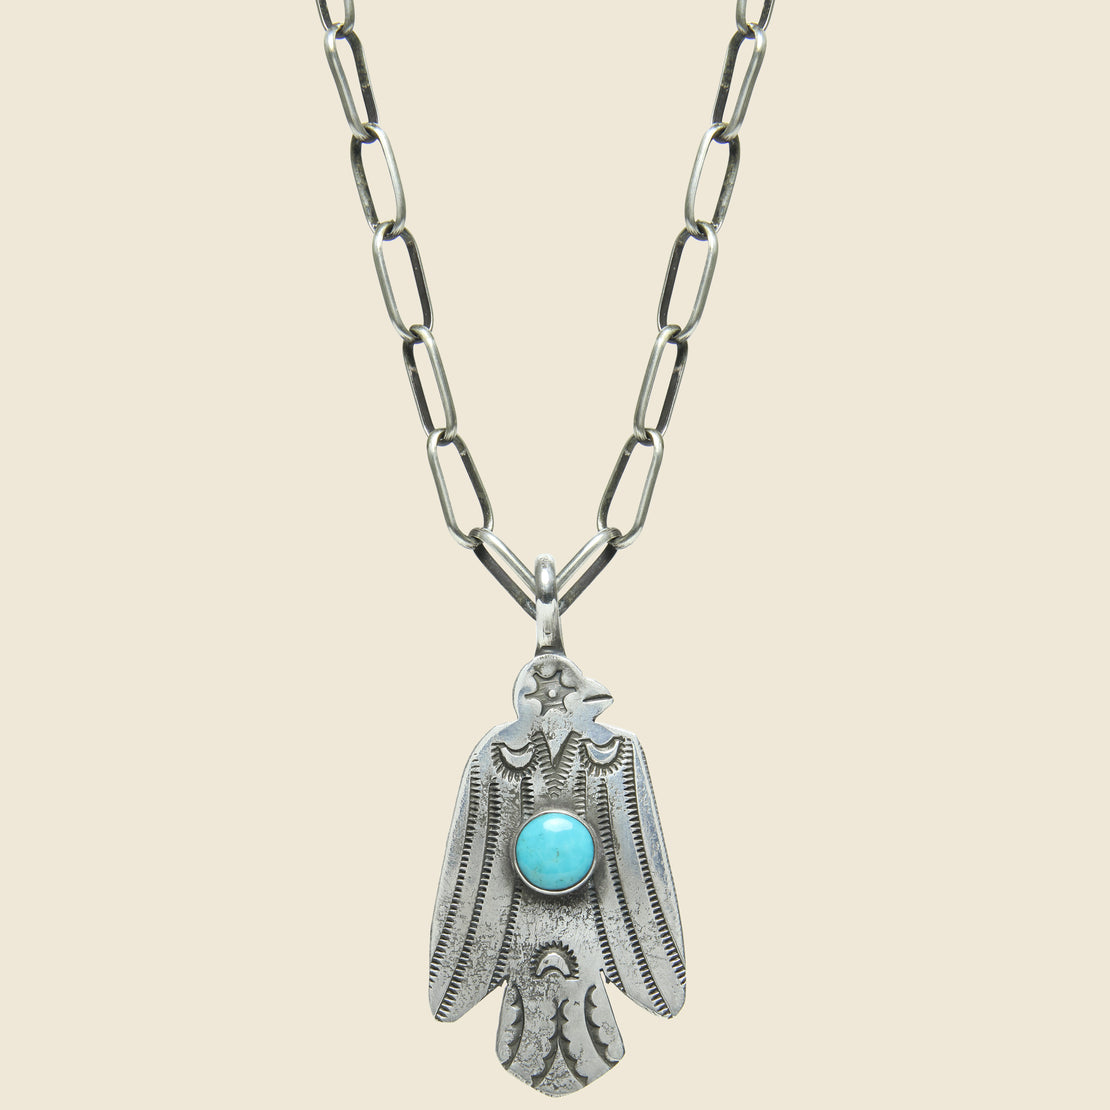 Smith Bros. Trading Co. Star Eye Thunderbird Pendant Necklace - Sterling/Turquoise